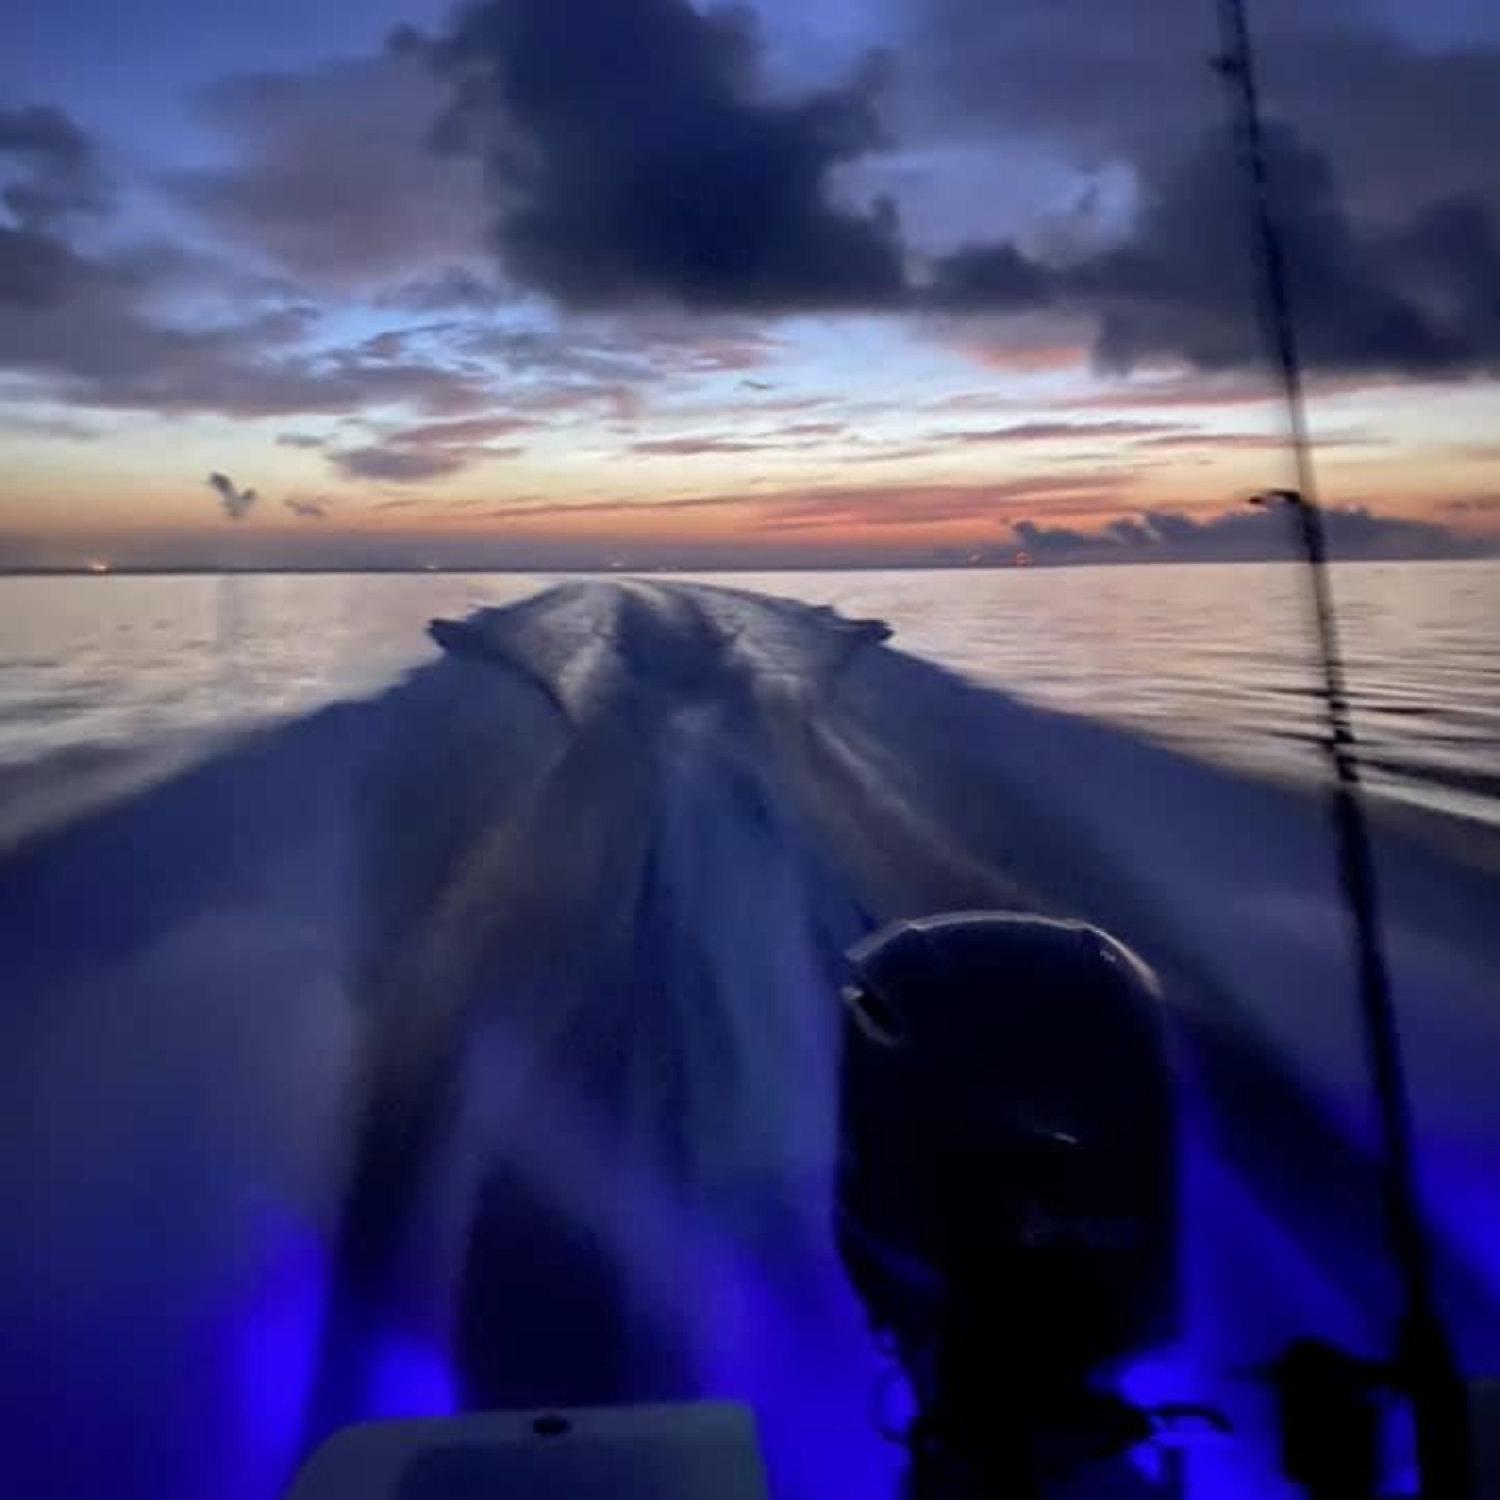 Title: Early morning run - On board their Sportsman Masters 227 Bay Boat - Location: Dauphin Island, AL. Participating in the Photo Contest #SportsmanAugust2020